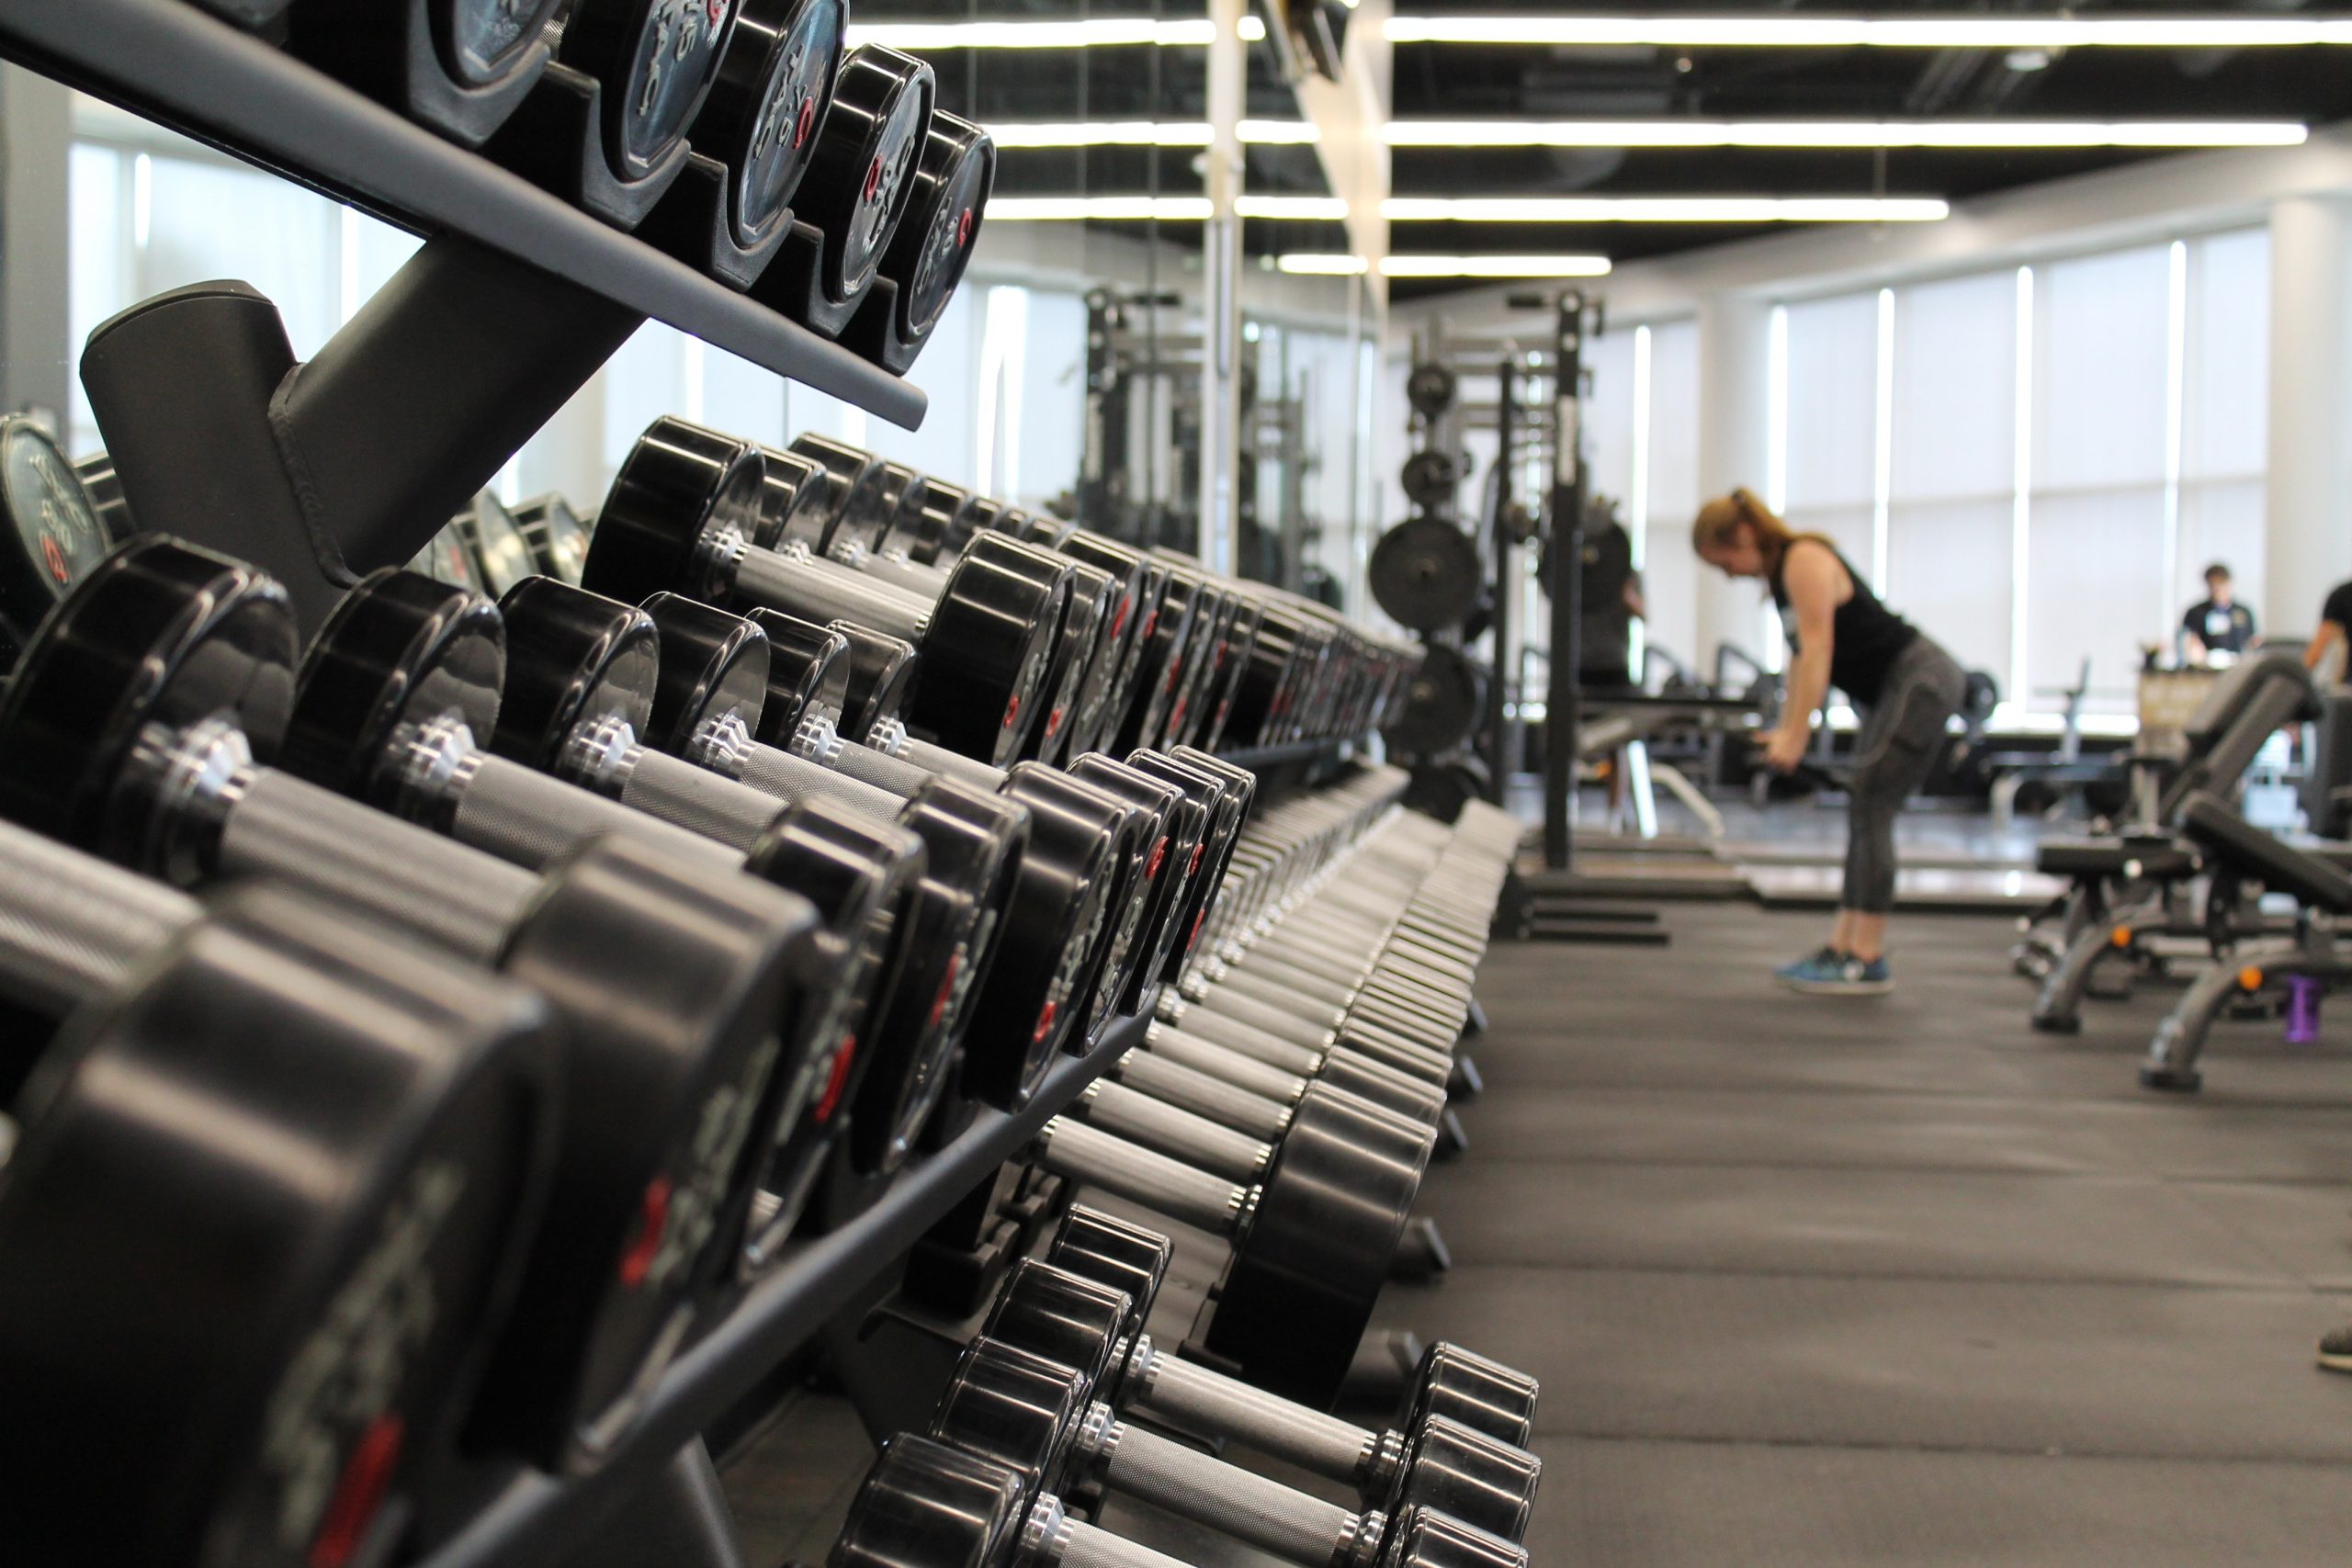 Room with rows of dumbbells with a woman lifting weights in the distance.